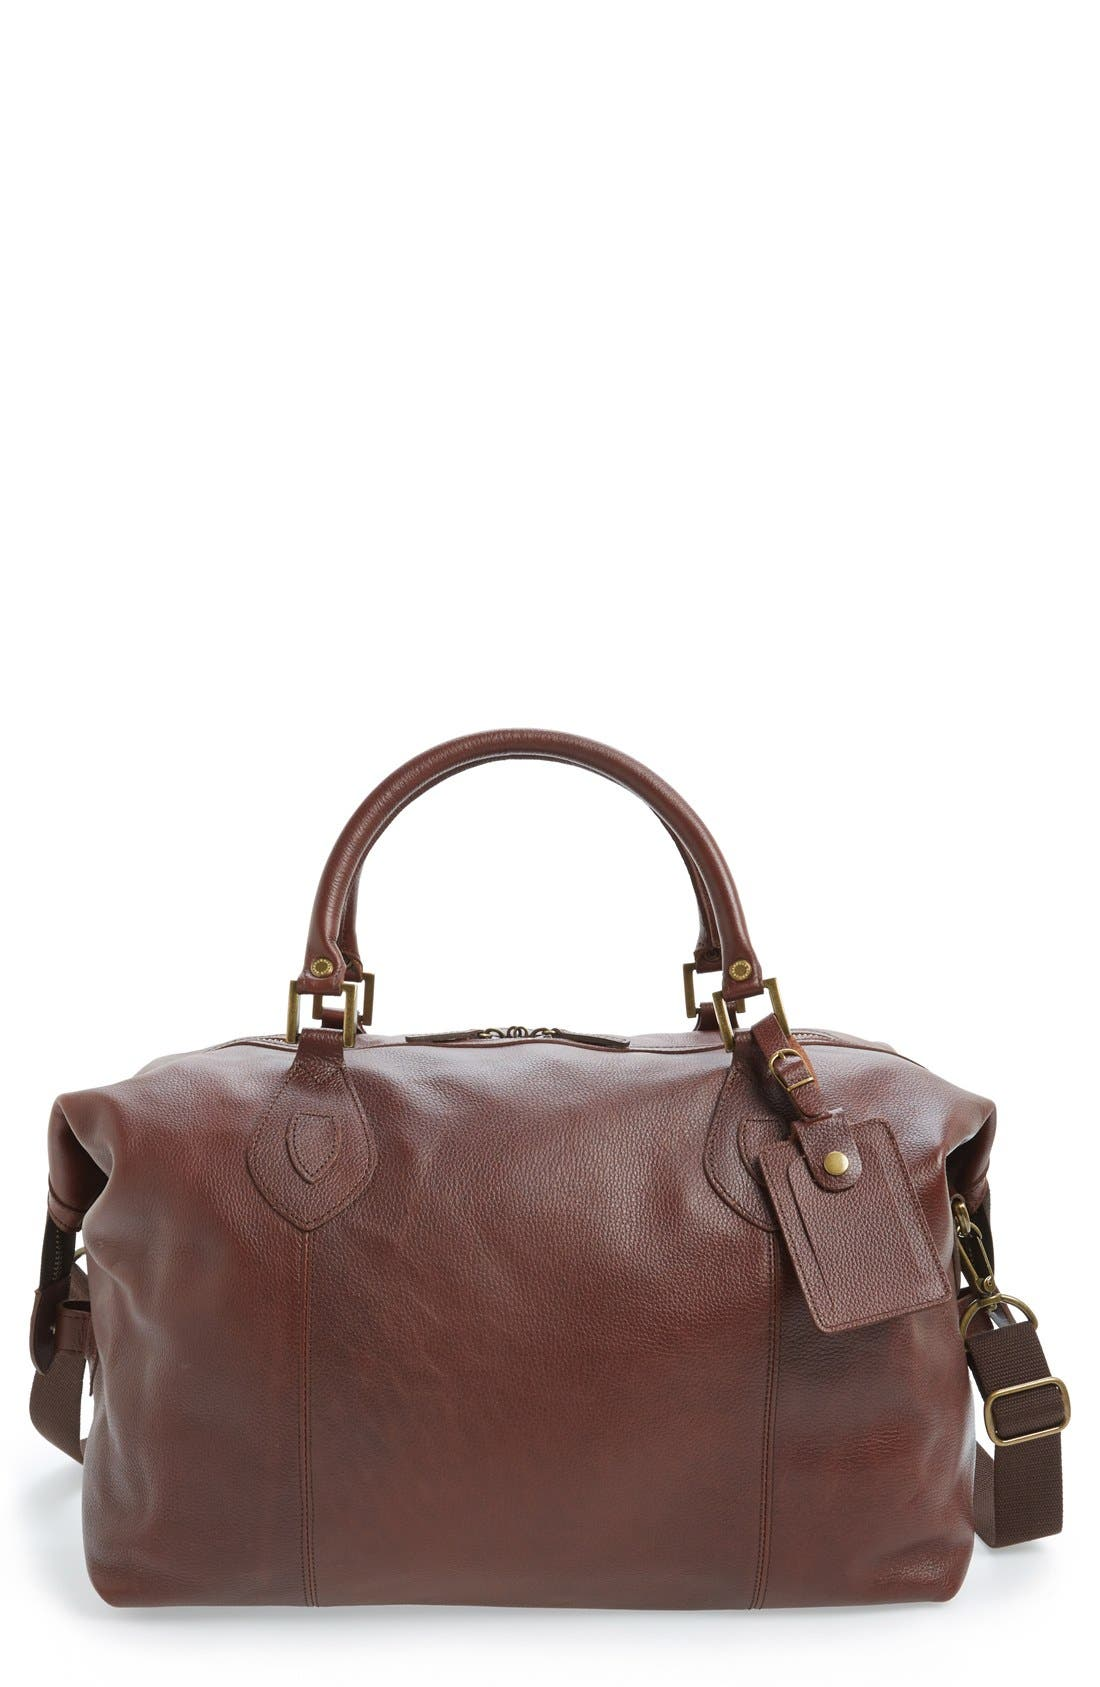 Alternate Image 1 Selected - Barbour Leather Travel Bag